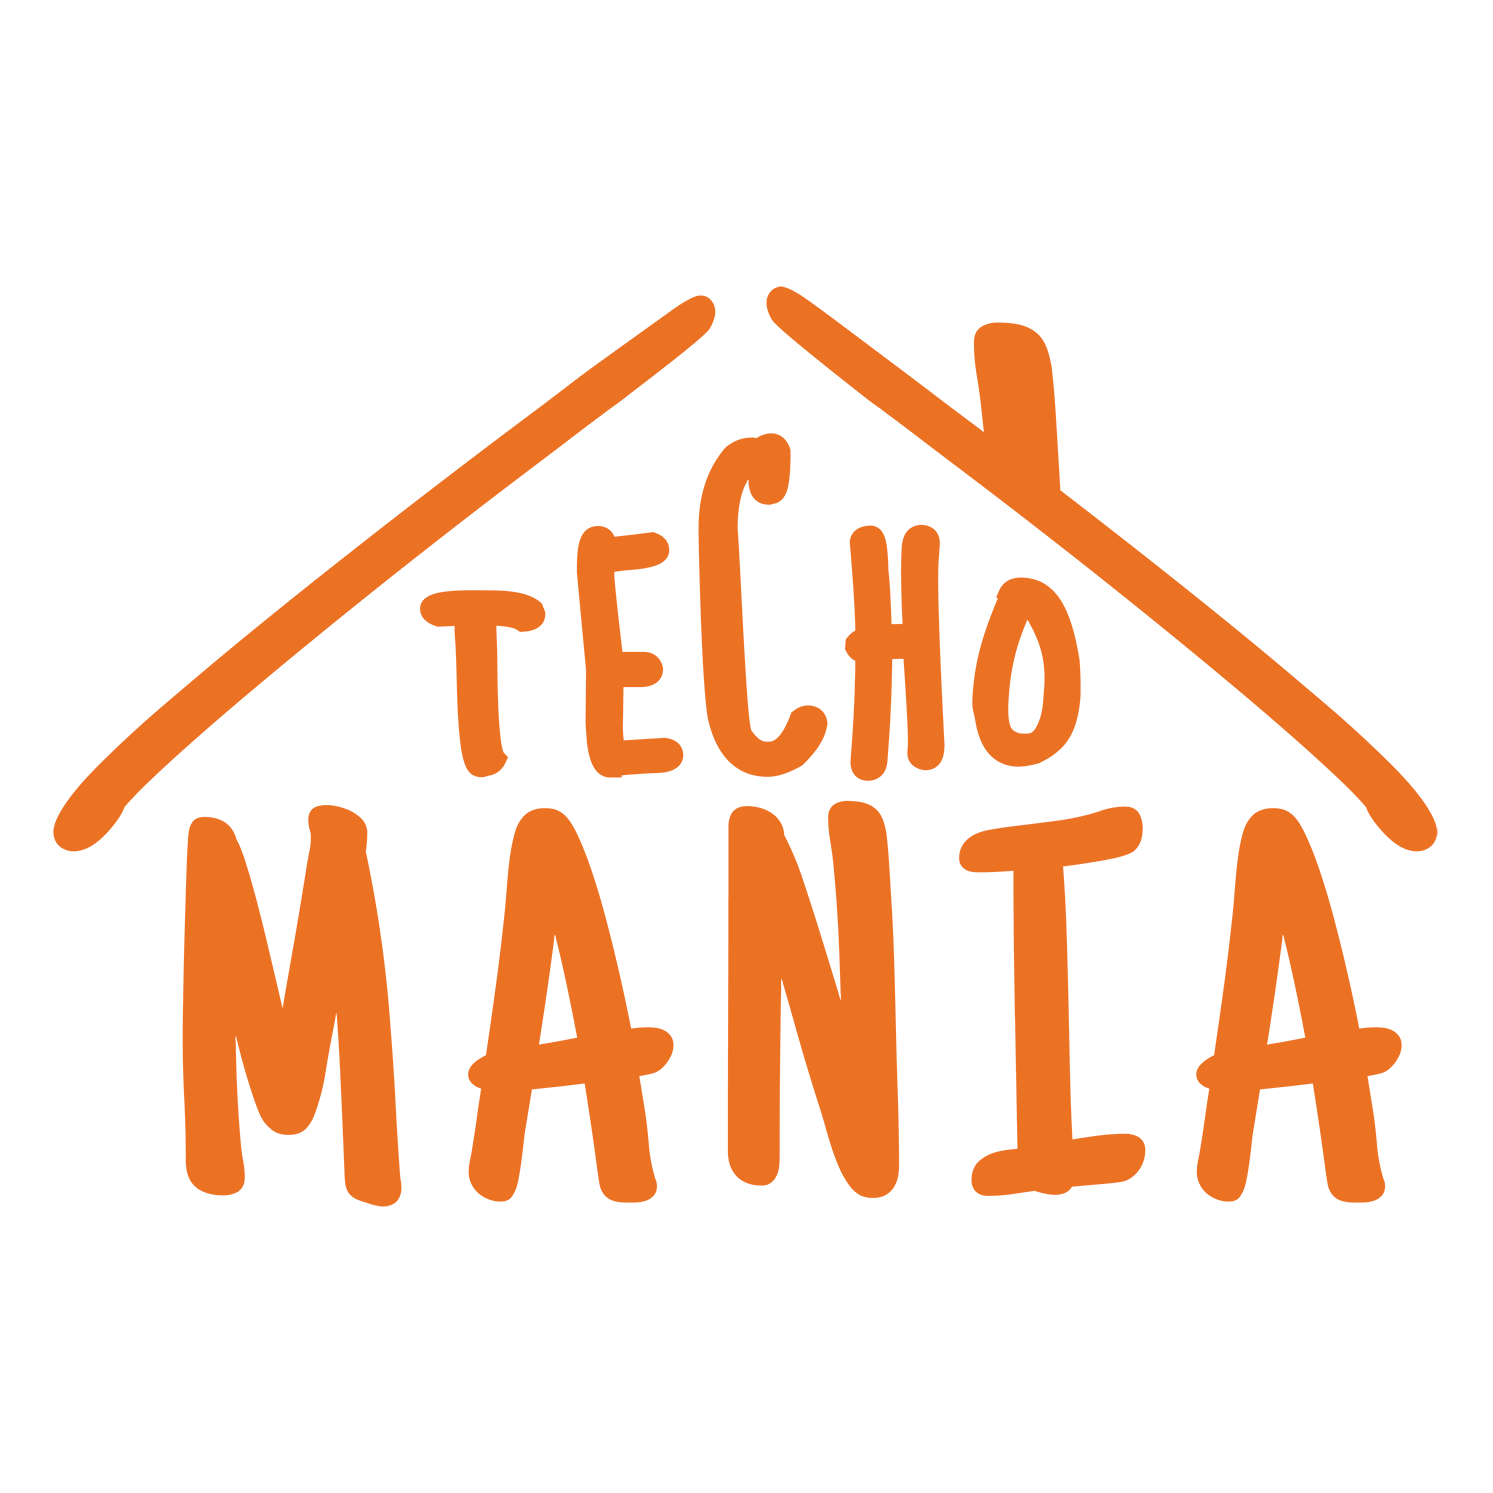 Techomania.cl